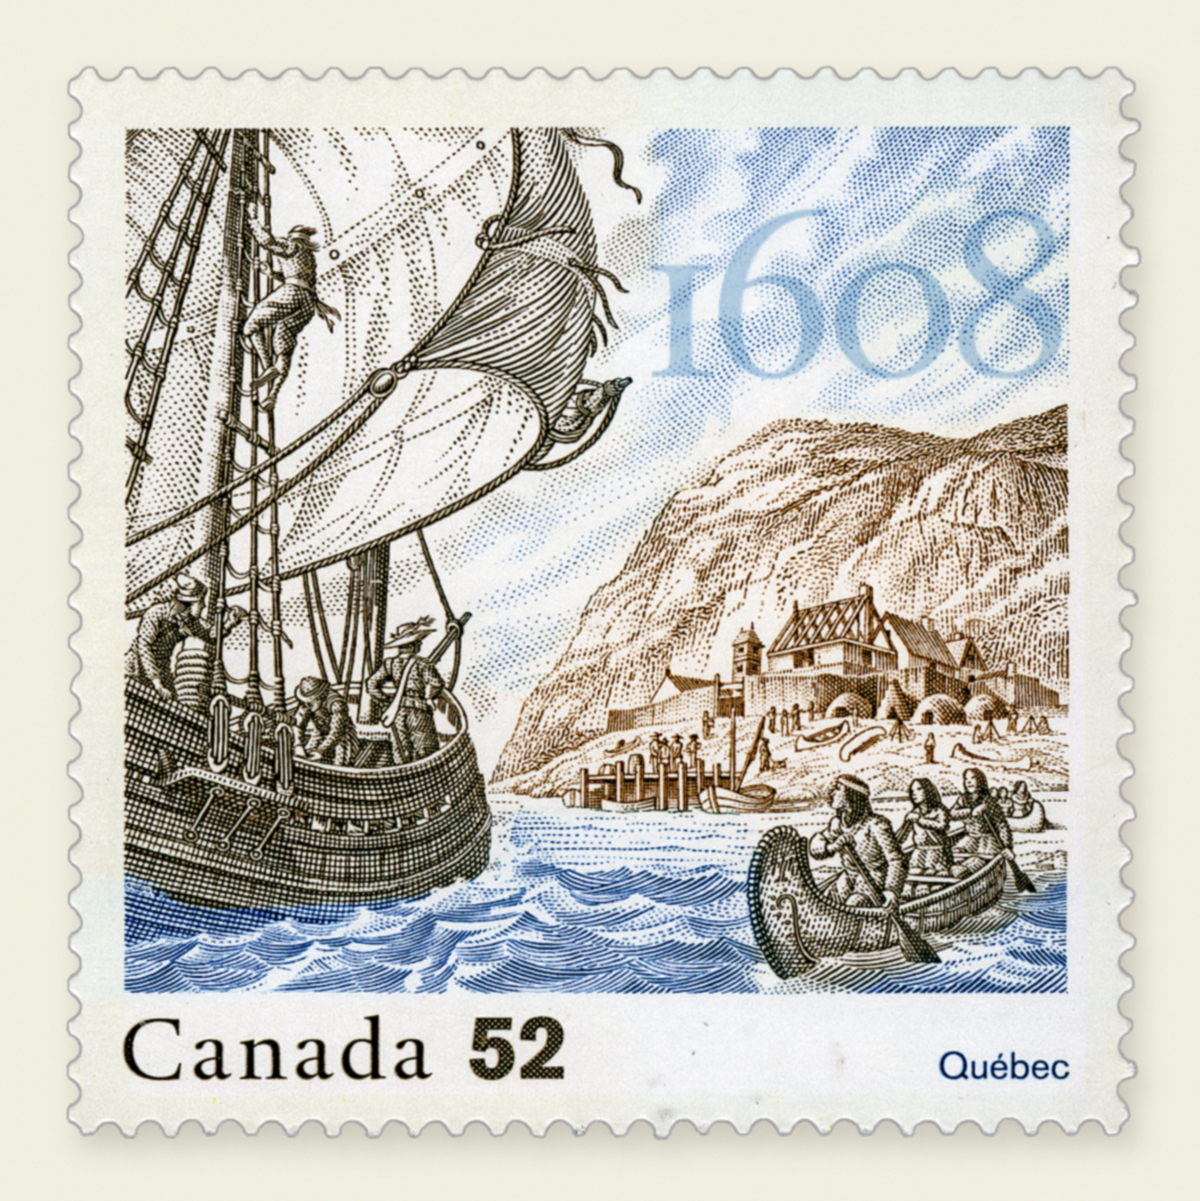 Canada Stamp - Don de Dieu - Issued May 16, 2008